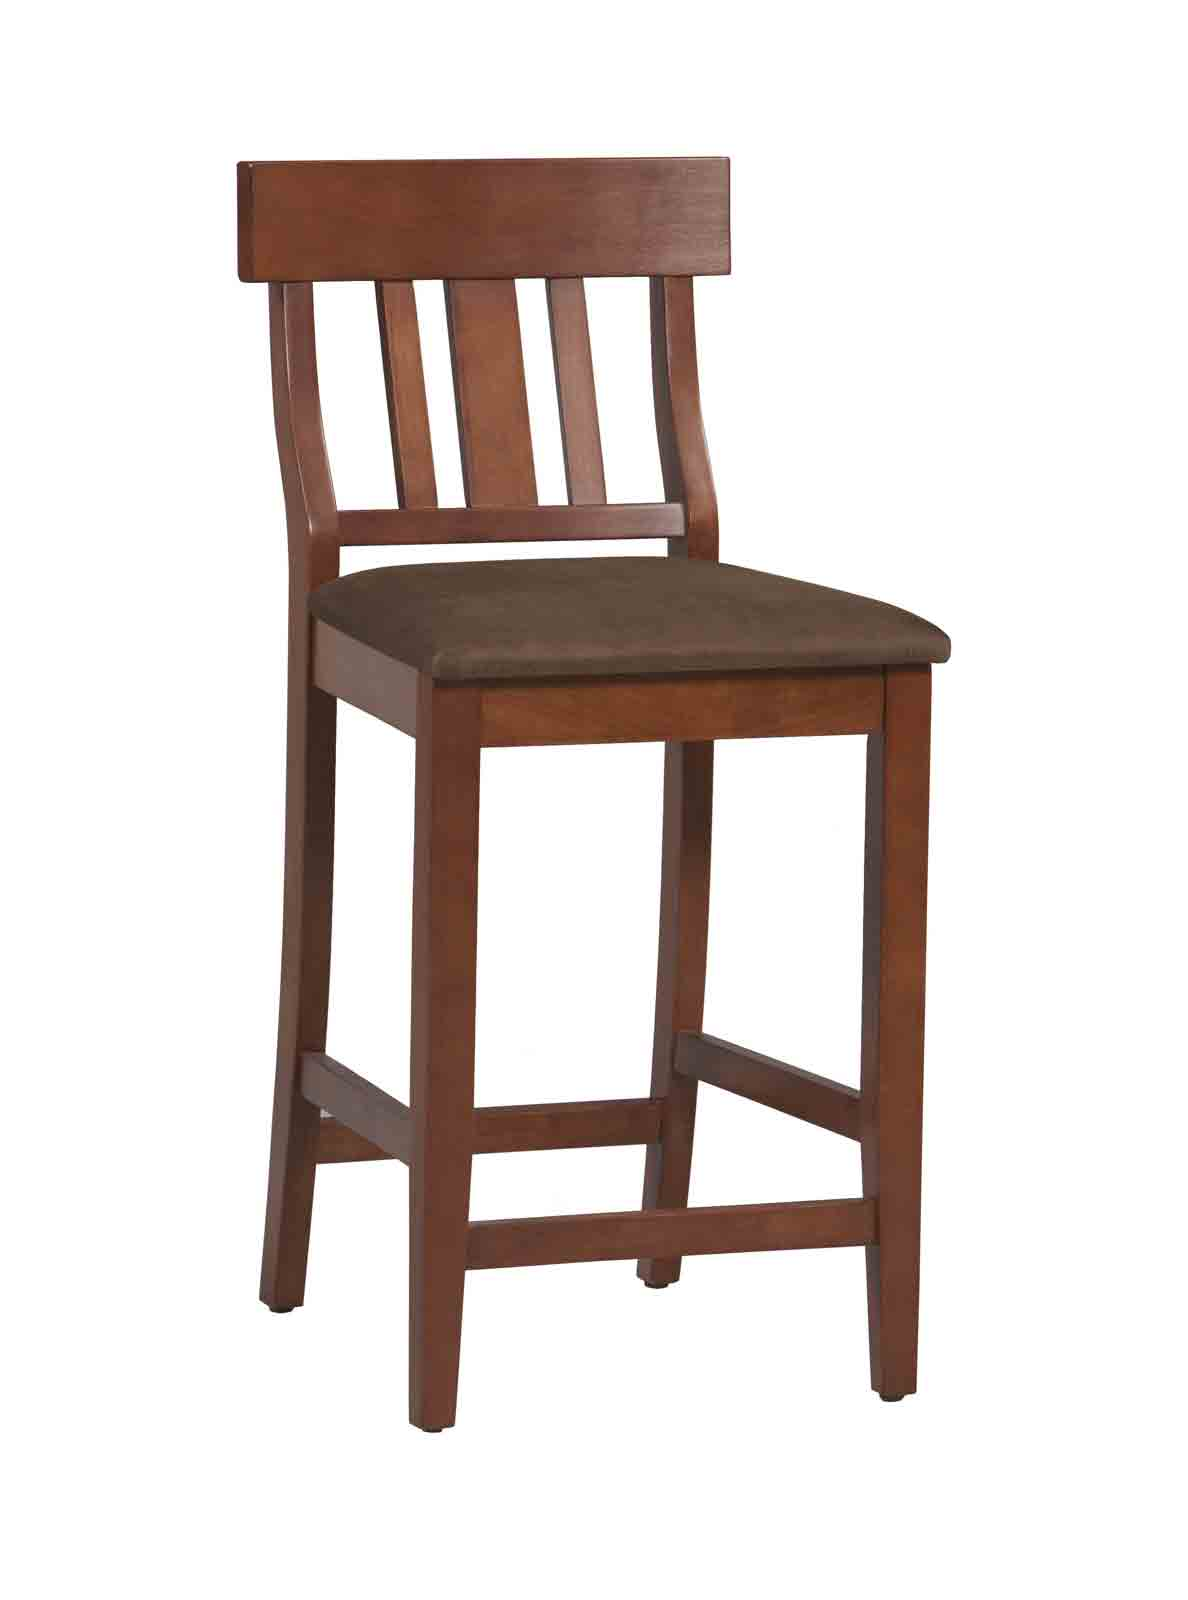 Torino Collection Slat Back Bar Stool 30 By Linon In Wood